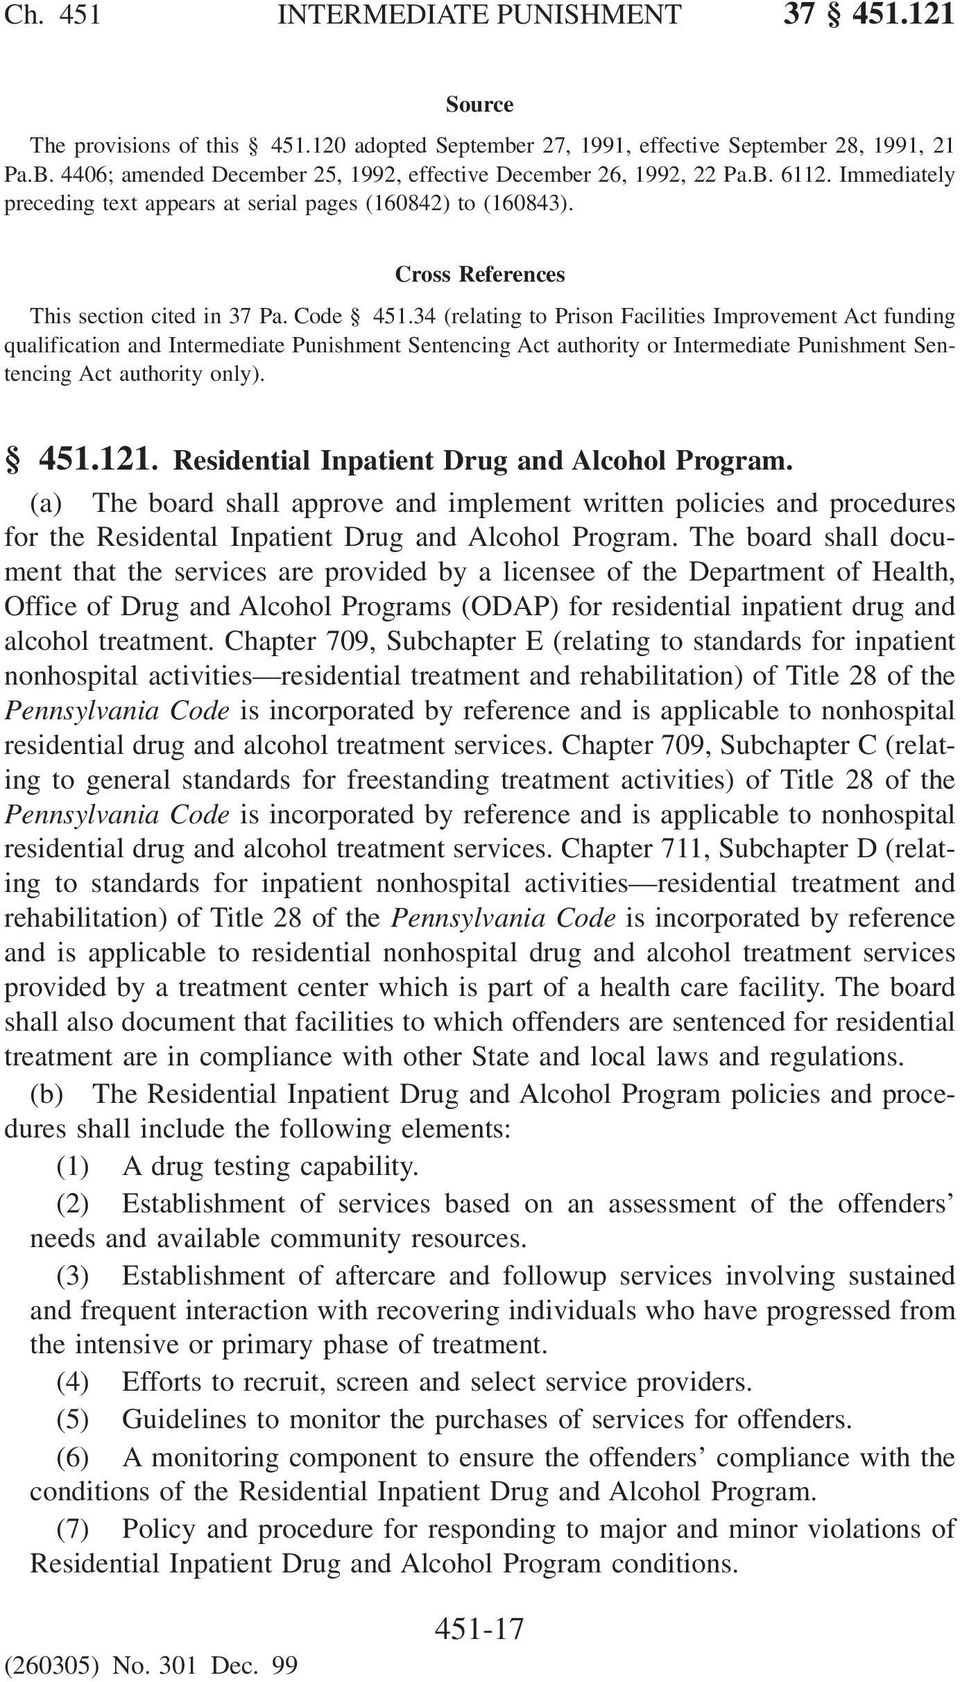 The board shall document that the services are provided by a licensee of the Department of Health, Office of Drug and Alcohol Programs (ODAP) for residential inpatient drug and alcohol treatment.